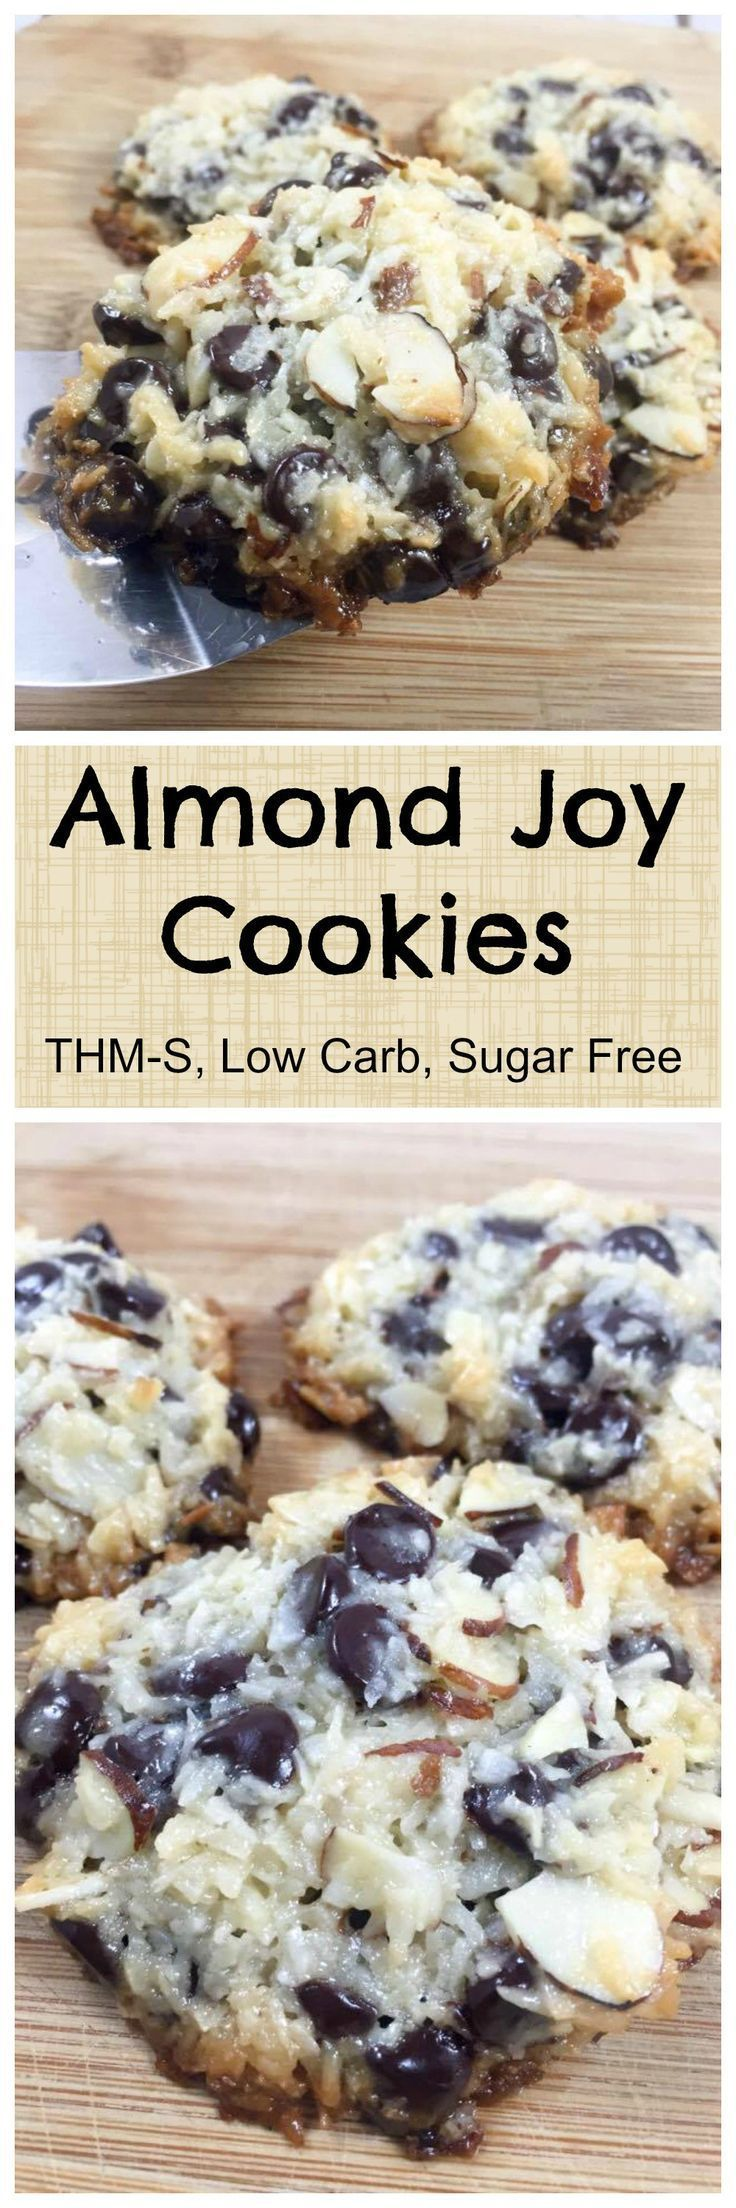 Coconut, Stevia-sweetened chocolate chips, almonds, and homemade (sugar free) low carb sweetened condensed milk. Only 4 ingredients and super easy to make! I lo